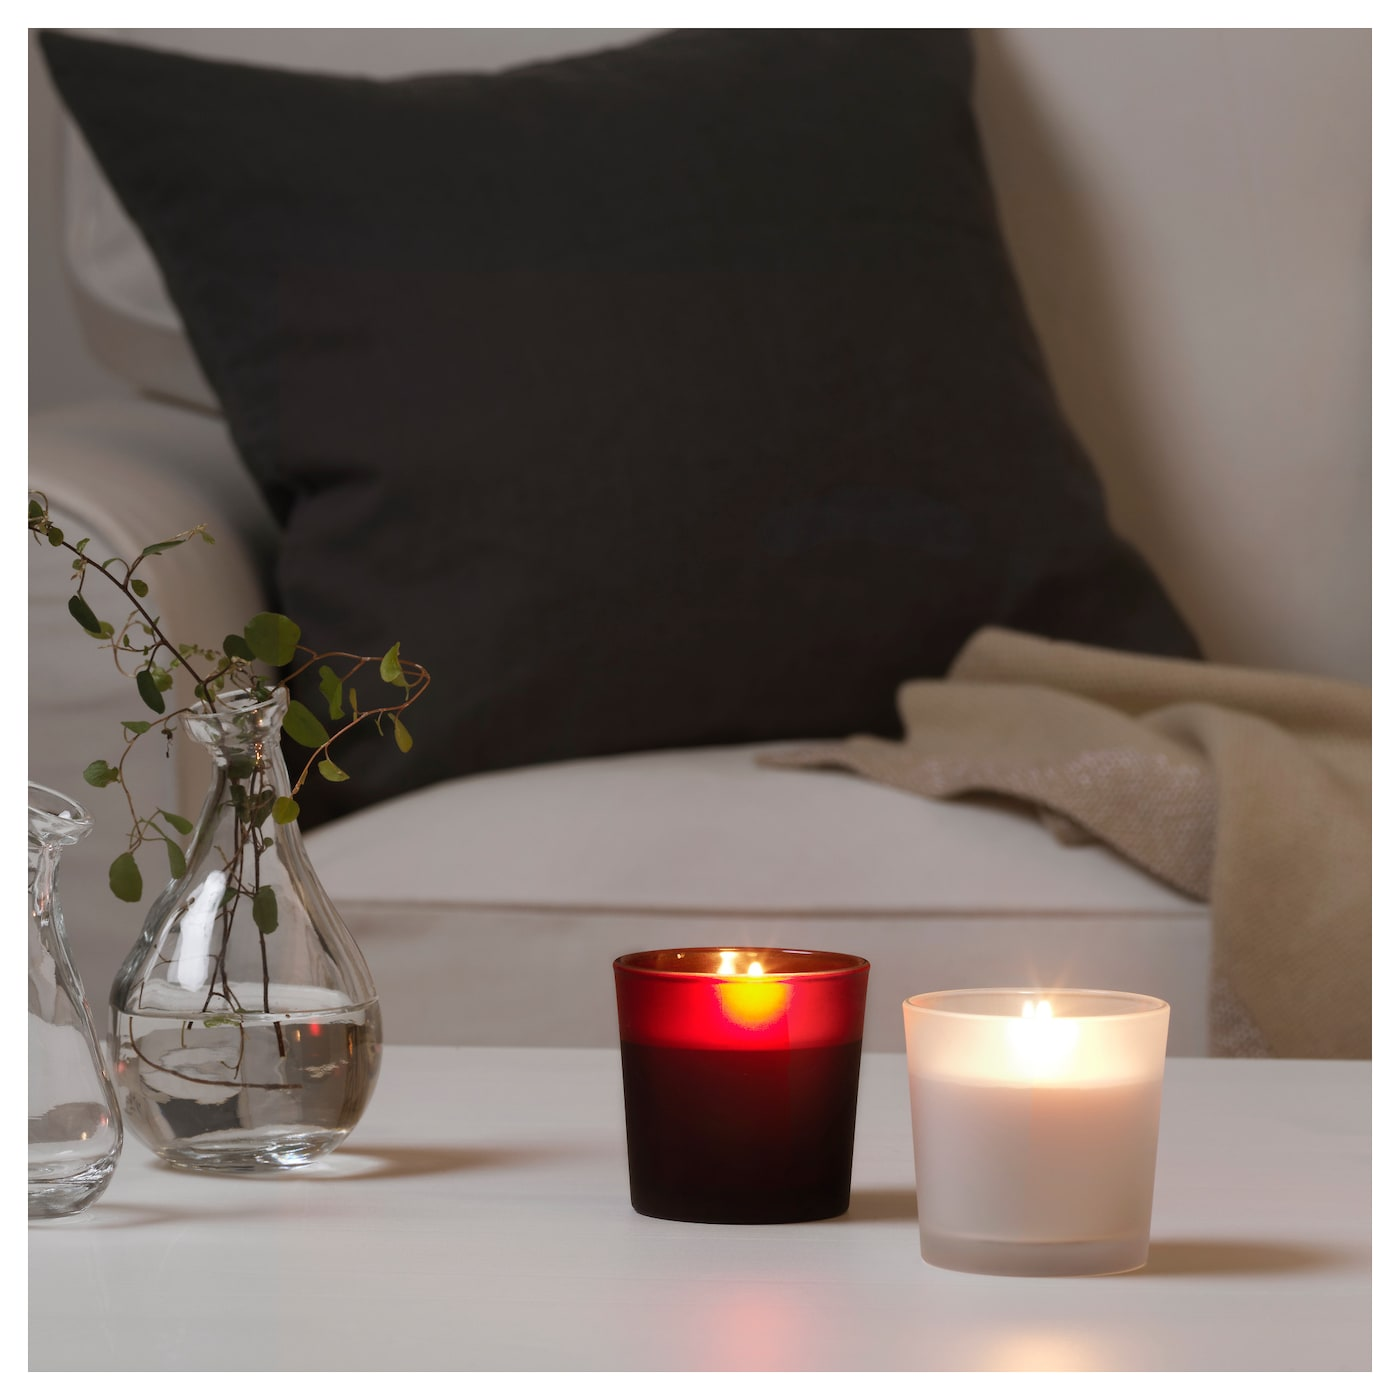 IKEA VINTER 2017 scented candle in glass A soft vanilla scent with hints of sweet berries.